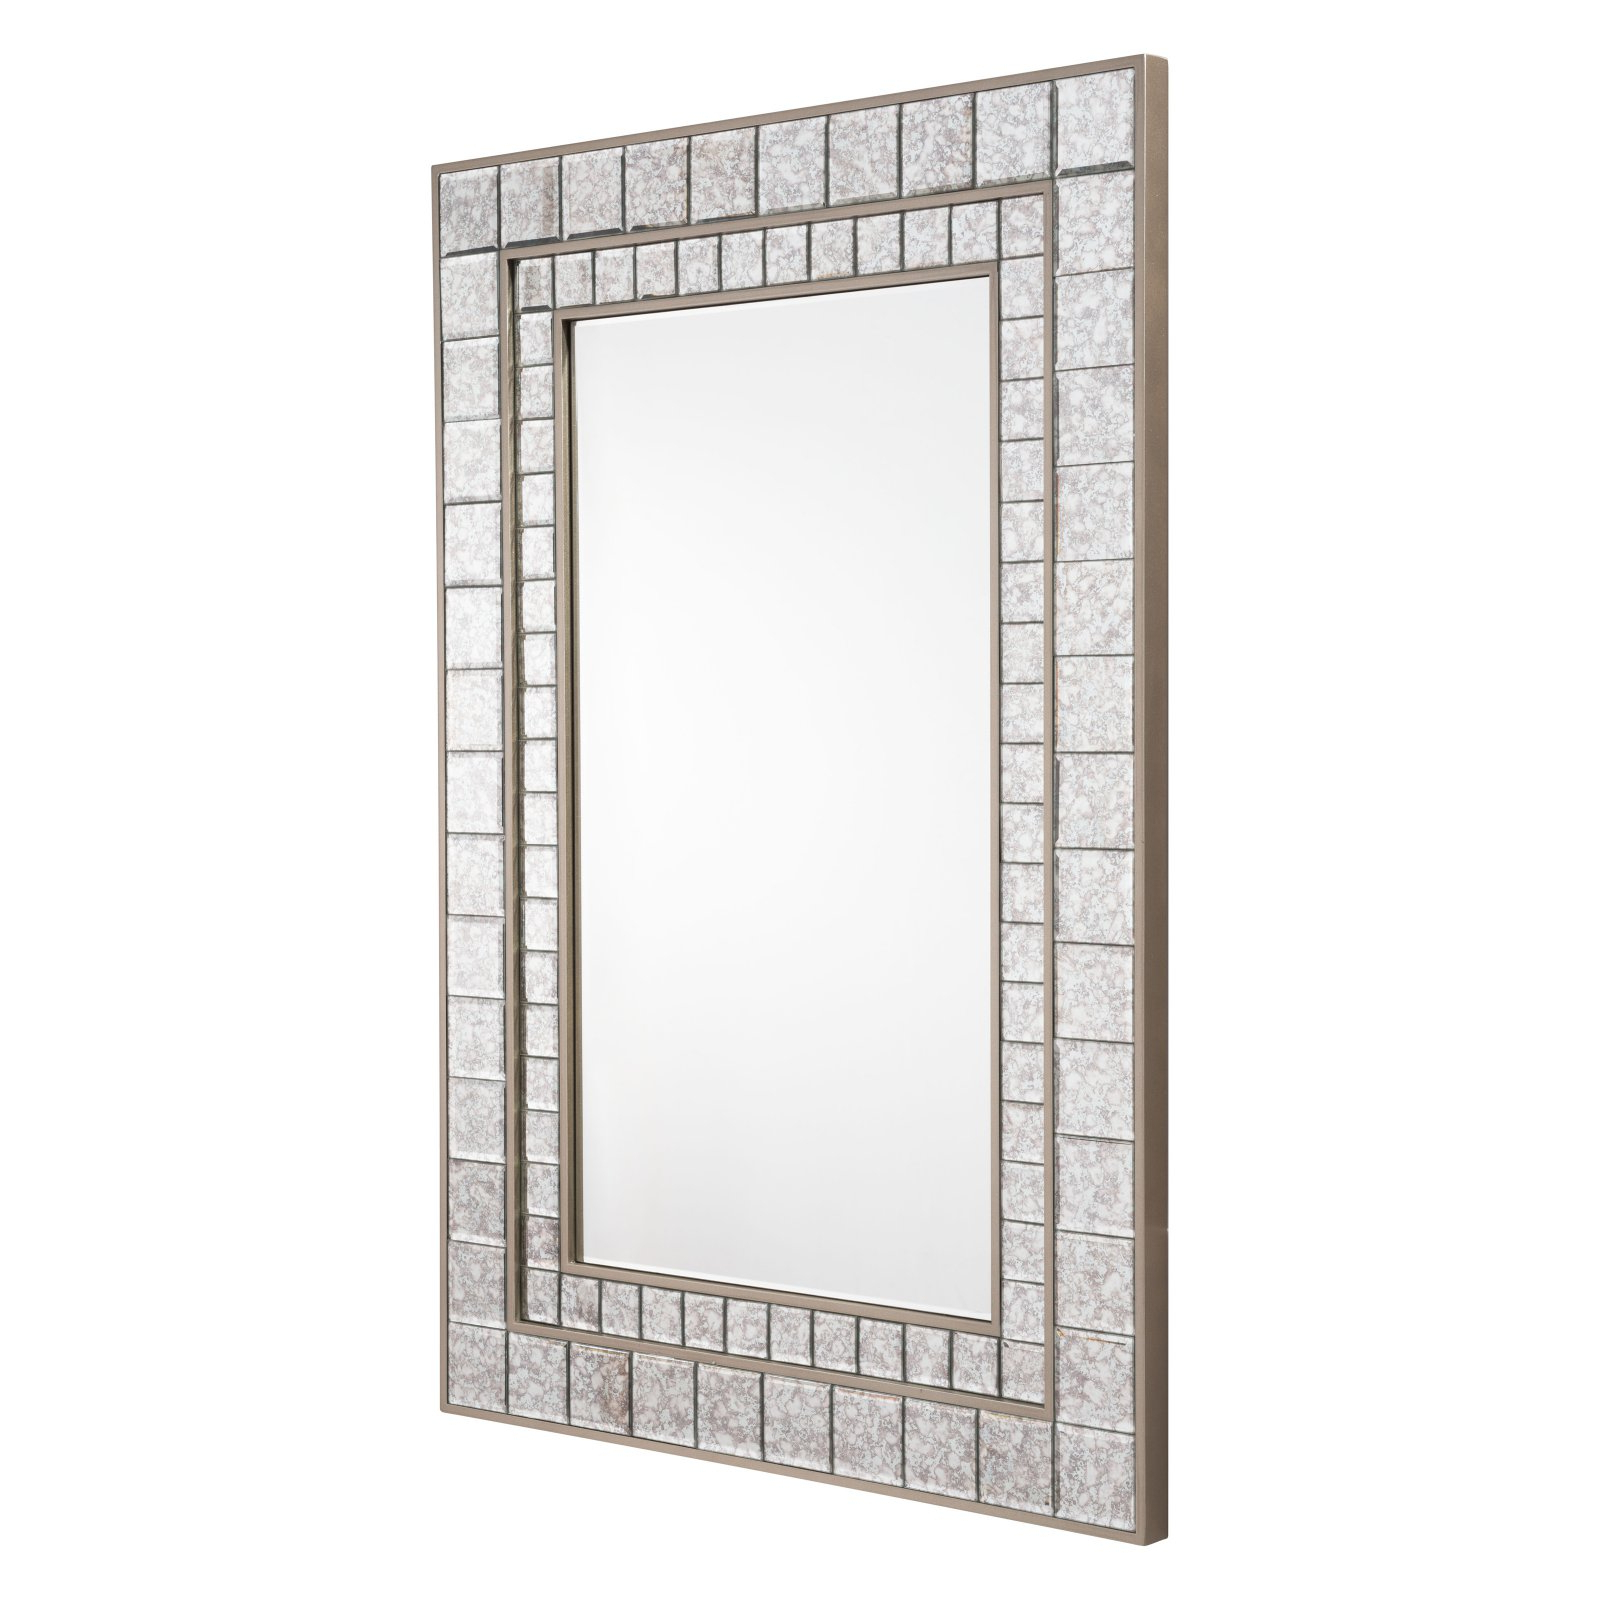 Modern & Contemporary Beveled Overmantel Mirrors Within Popular Zuo Modern Contemporary Antique Square Mini Mirror Framed (View 5 of 20)